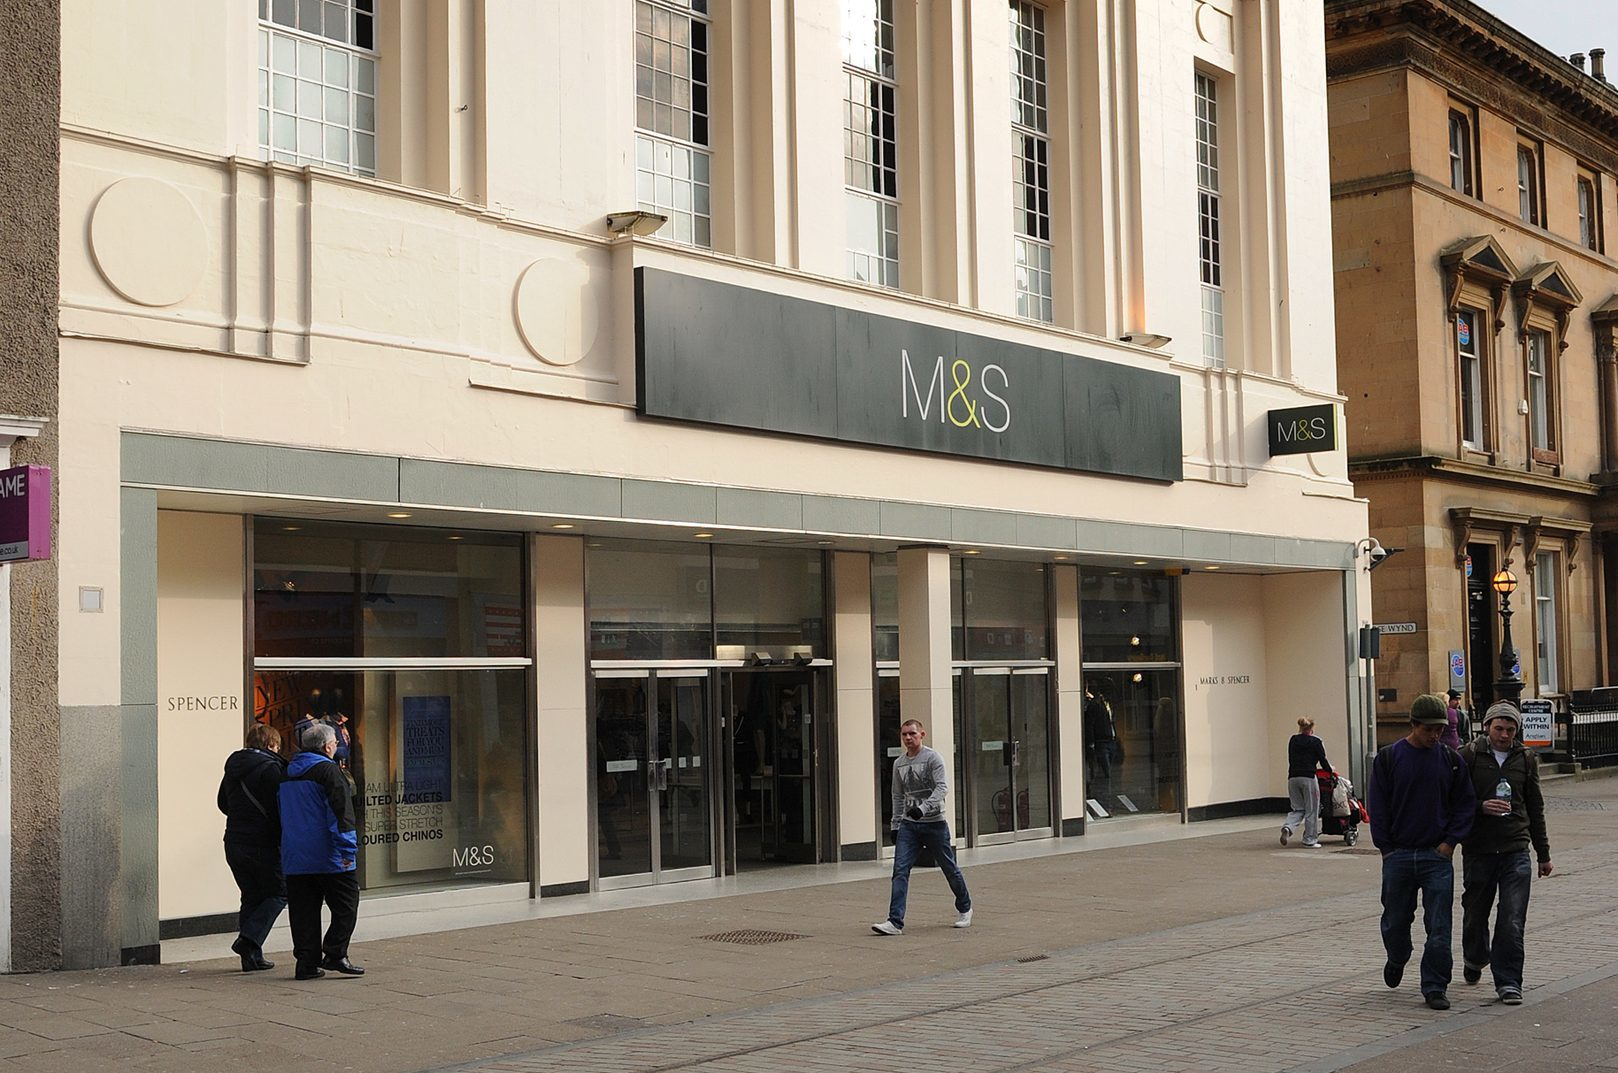 Marks and Spencer in the Murraygate, Dundee.